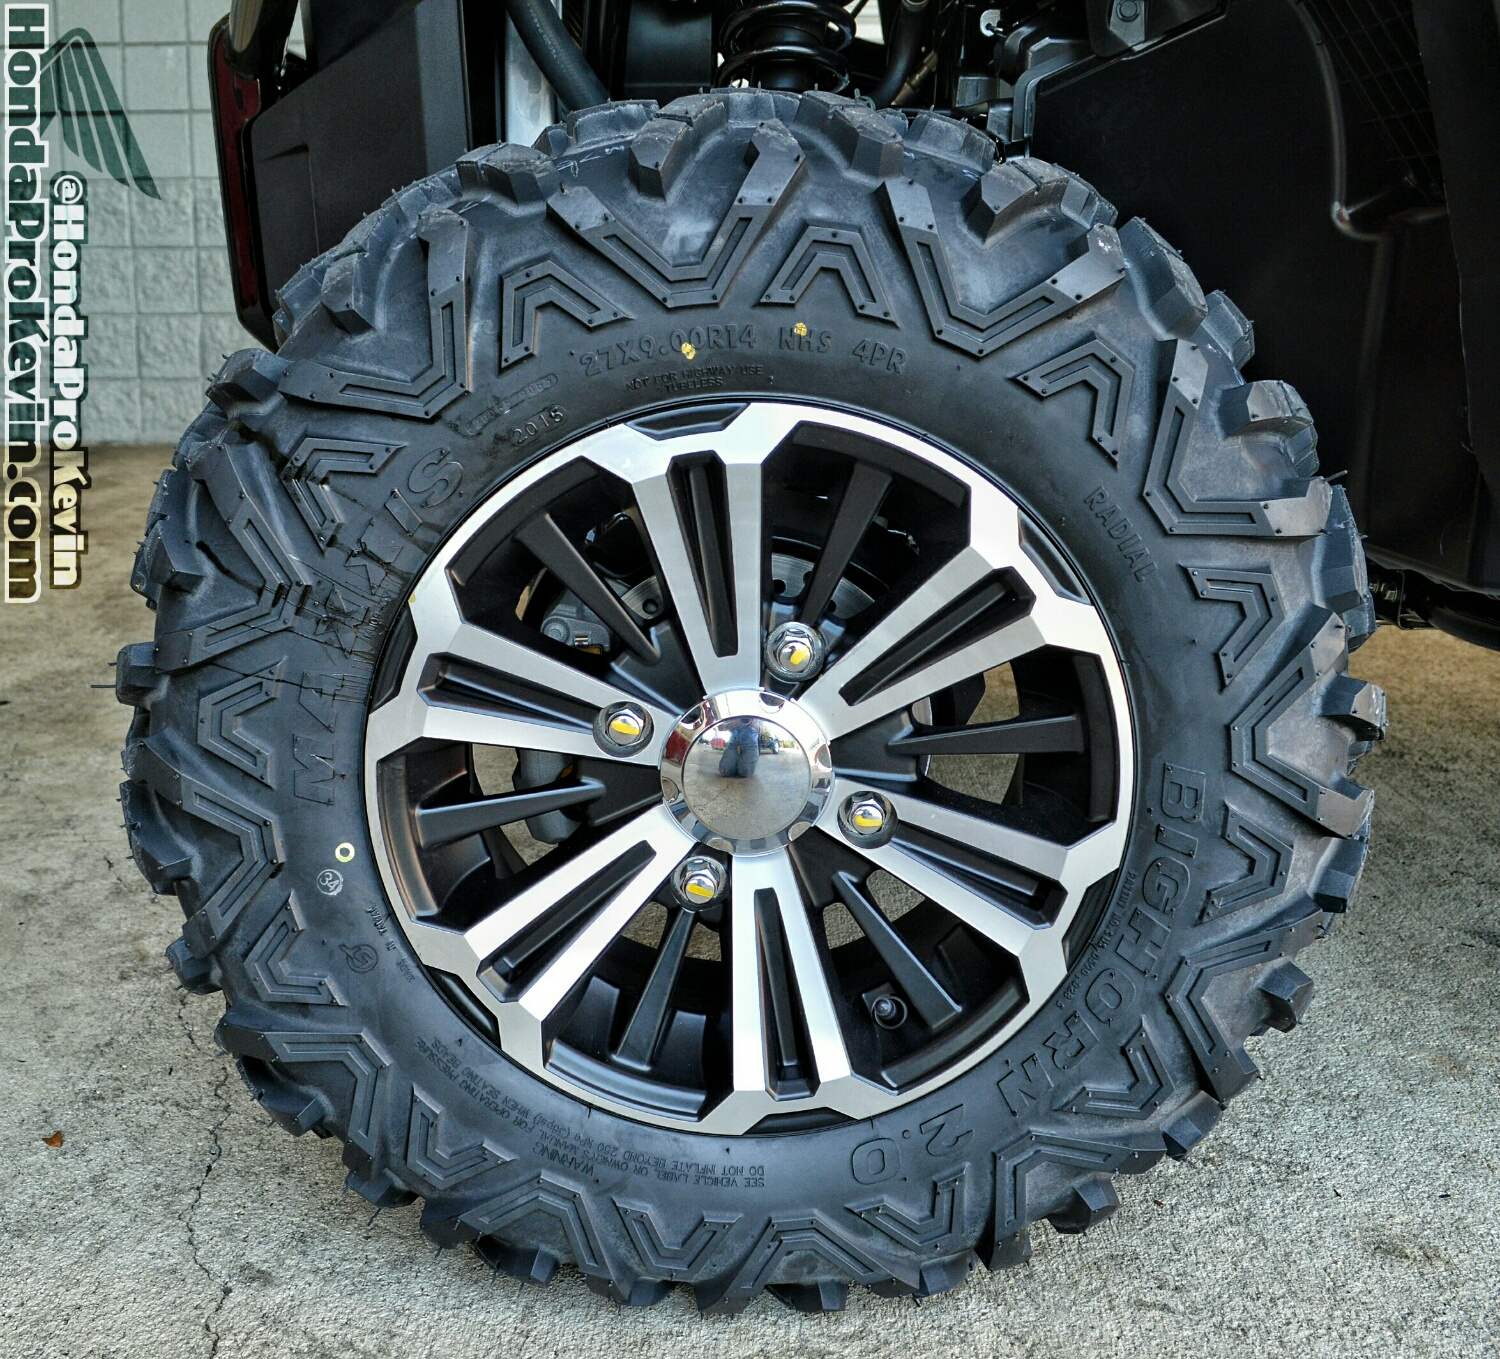 Honda Pioneer 1000-5 Tires & Wheels - Review / Specs - Side by Side ATV / UTV / SxS / Utility Vehicle 4x4 - SXS1000 - SXS10M5